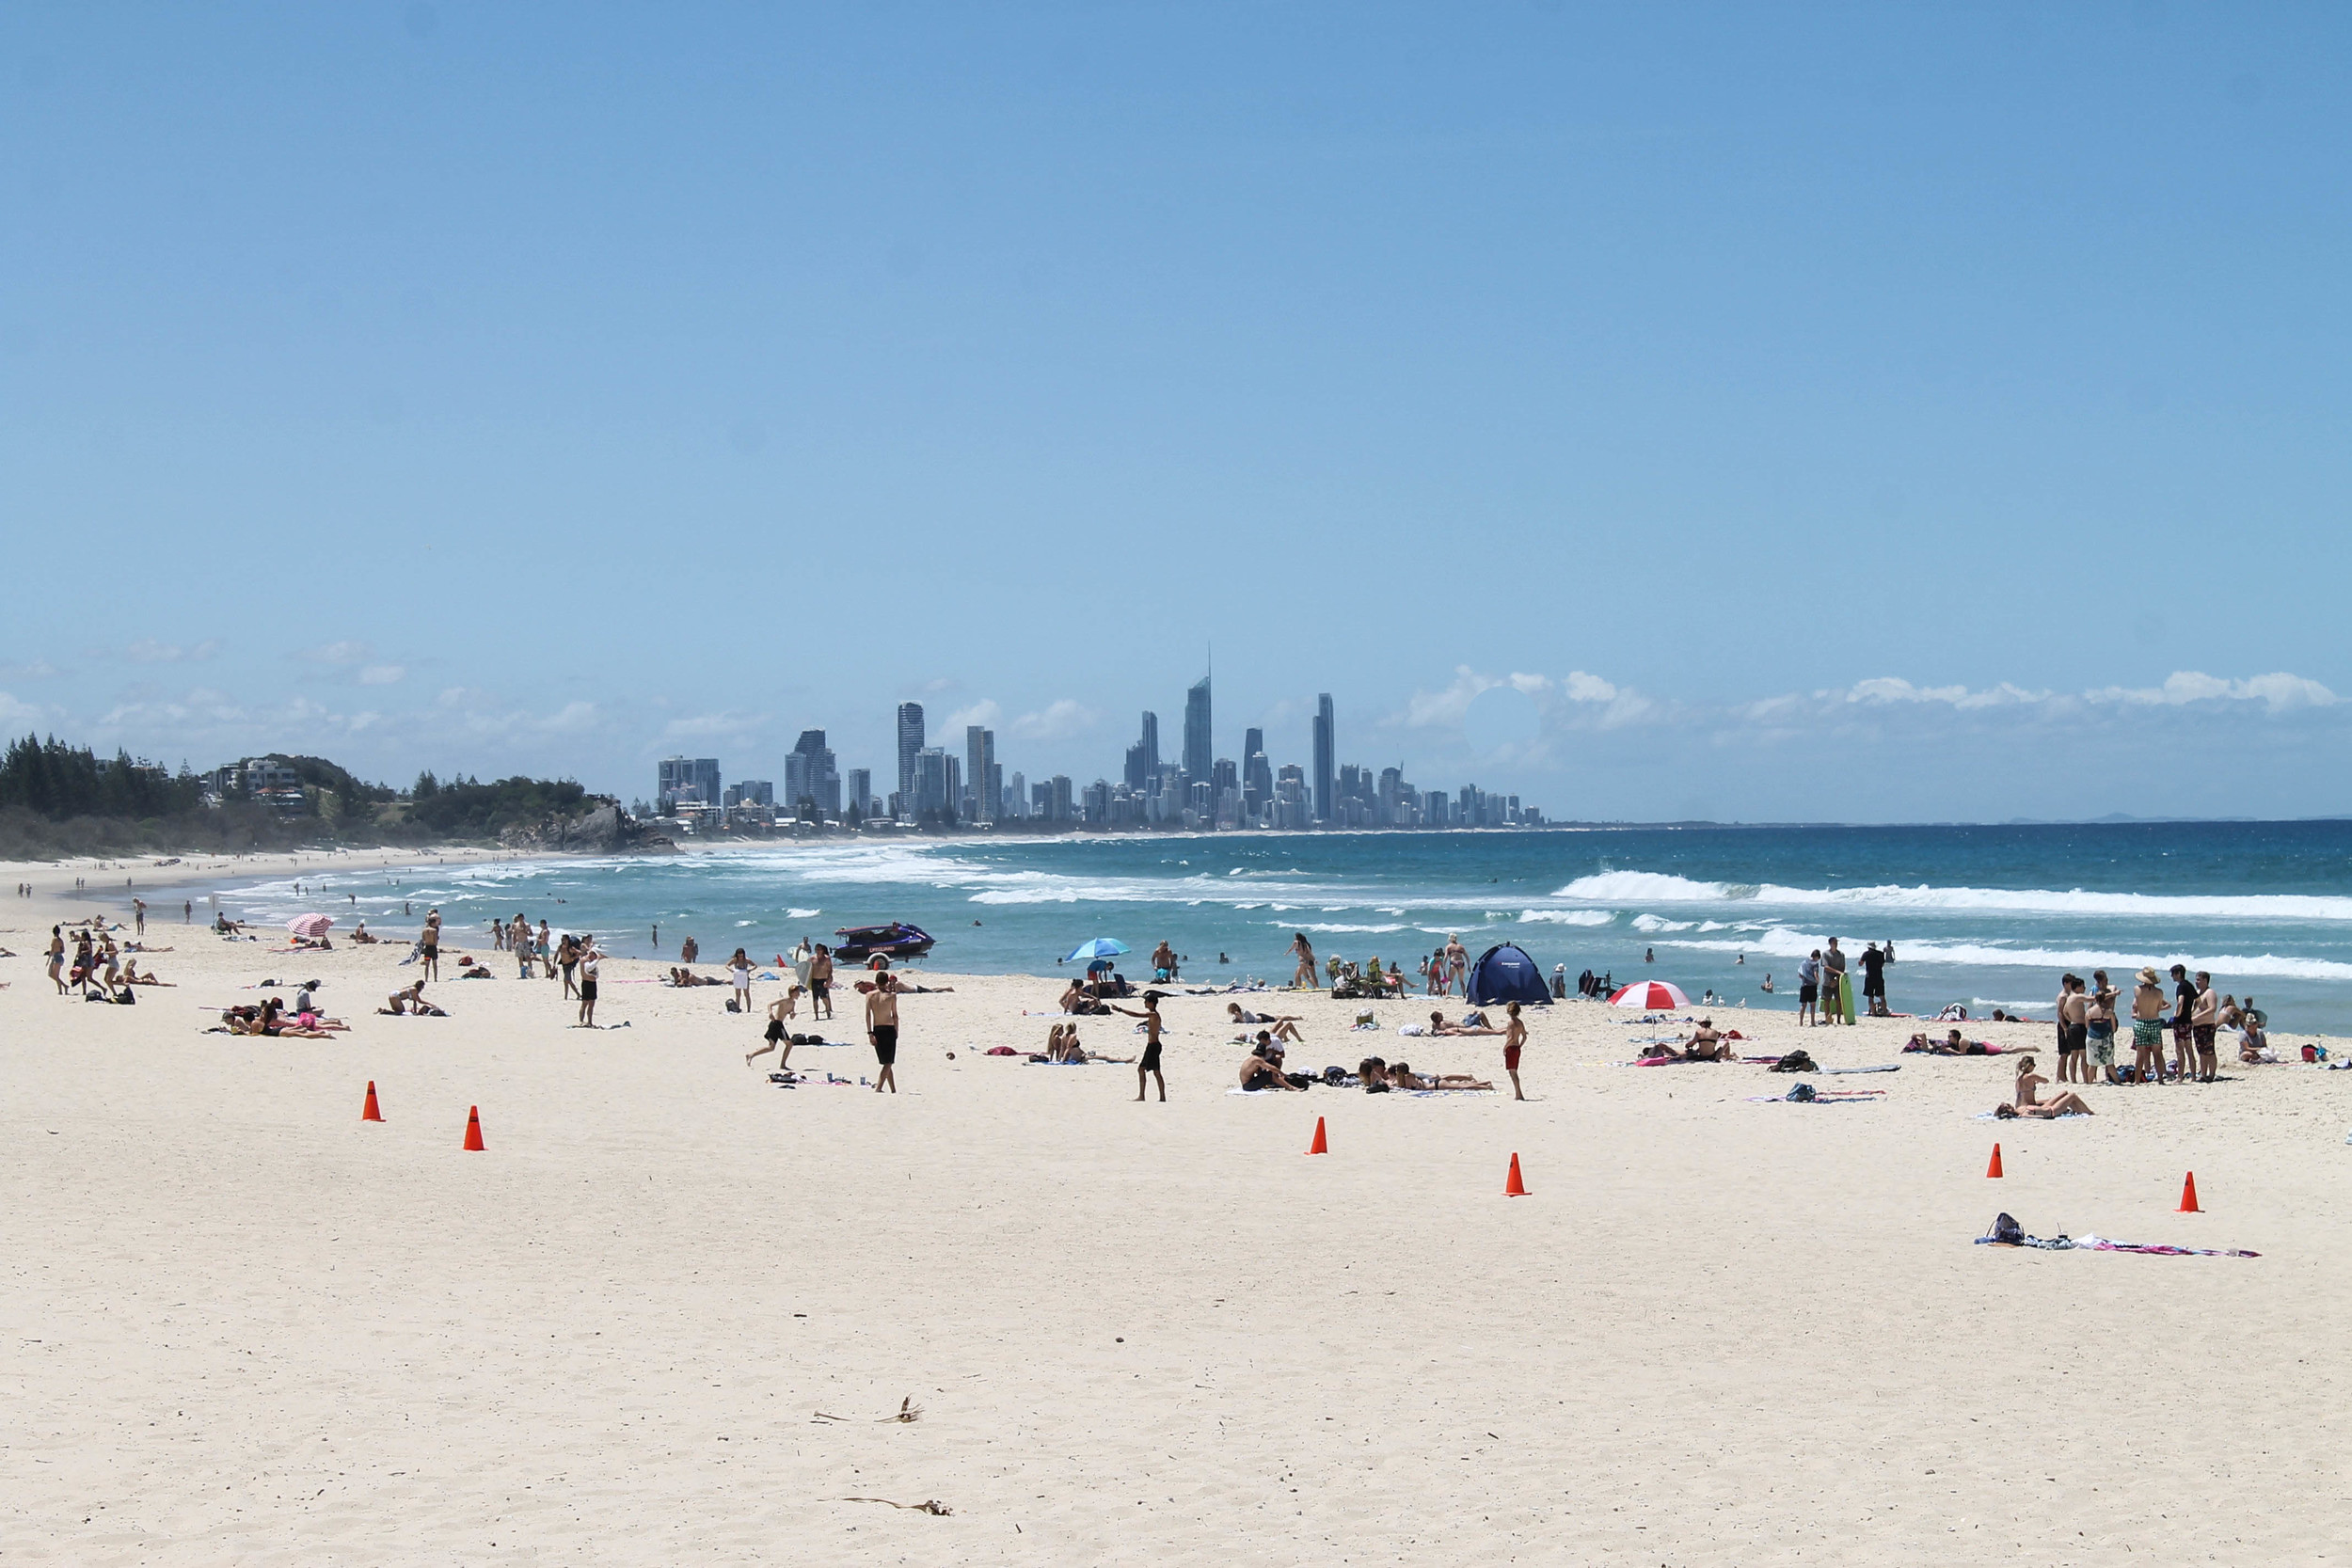 The beach at Burleigh Heads.